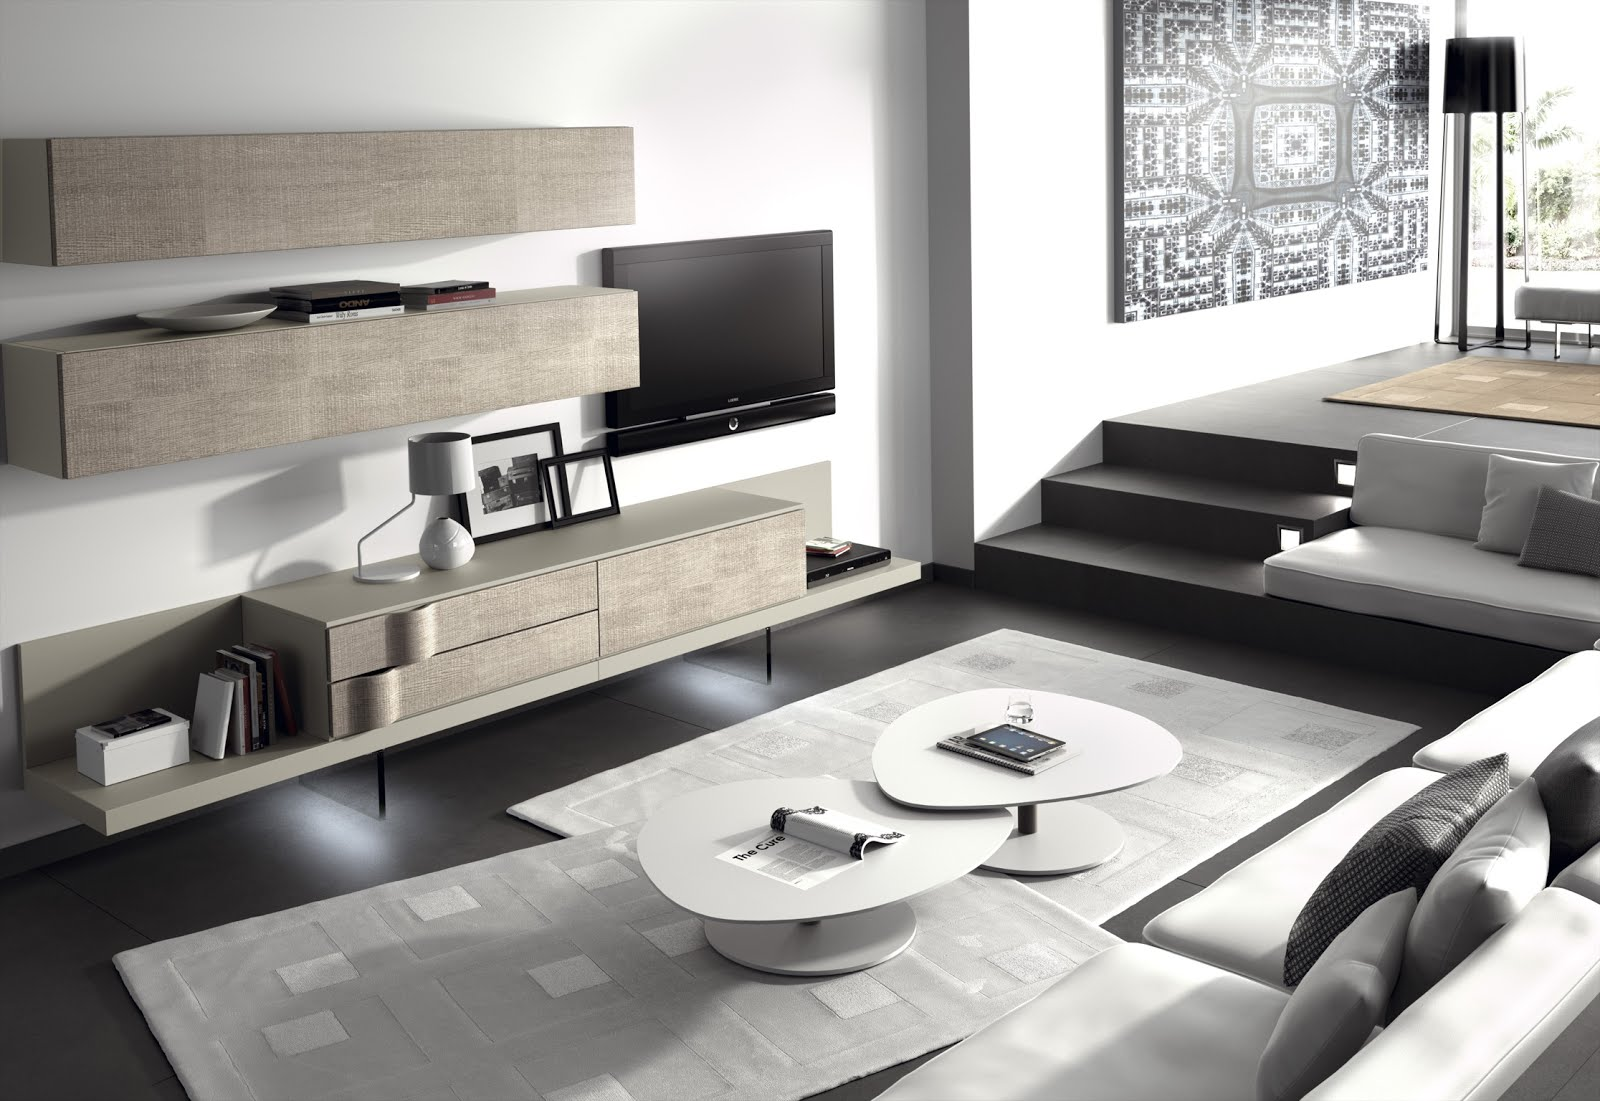 Dise os de salones modernos for Decorar mueble salon moderno